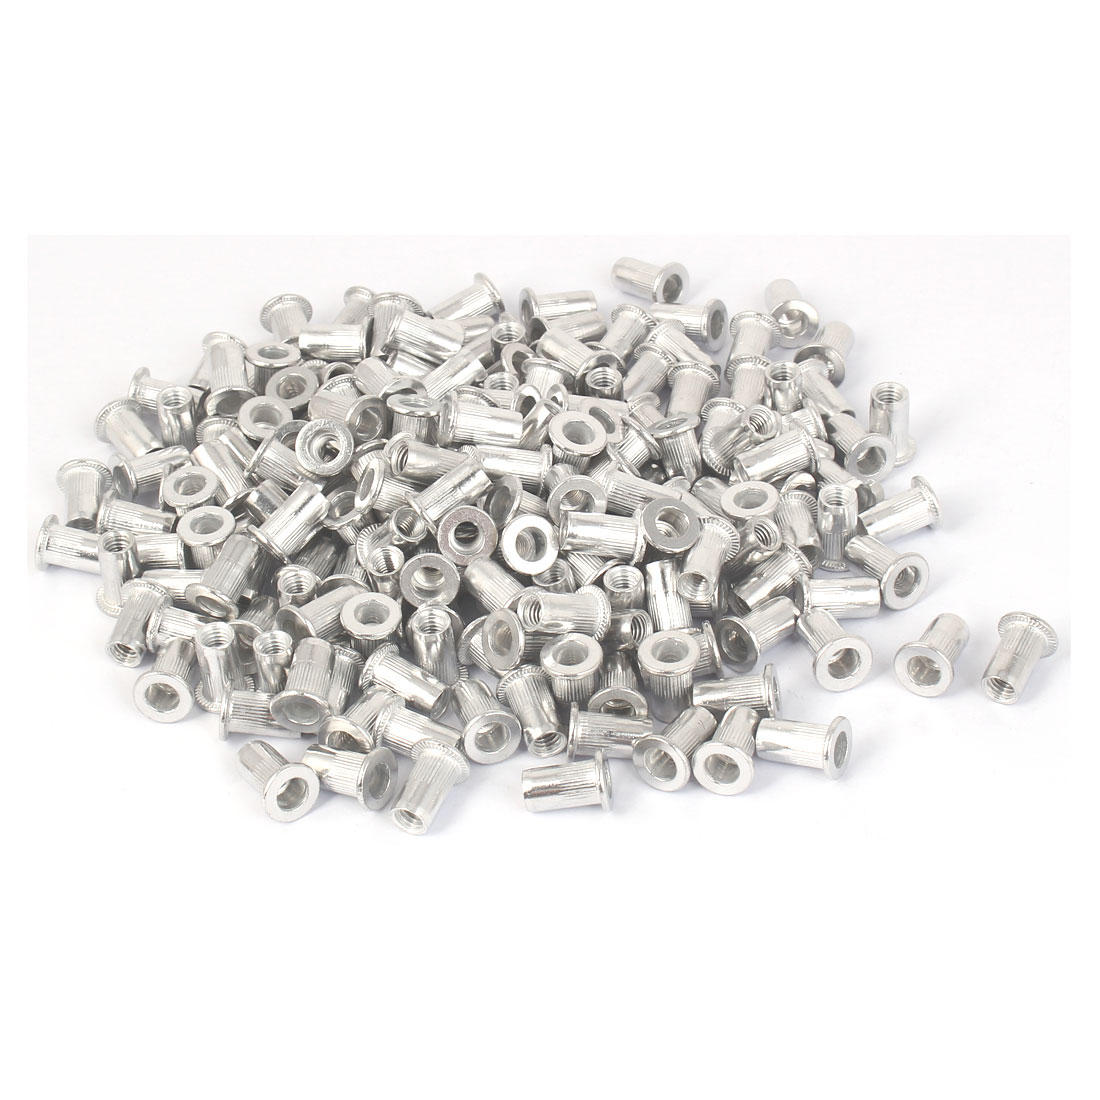 M5x13mm Aluminum Straight Knurled Blind Rivet Nut Fastener 200pcs